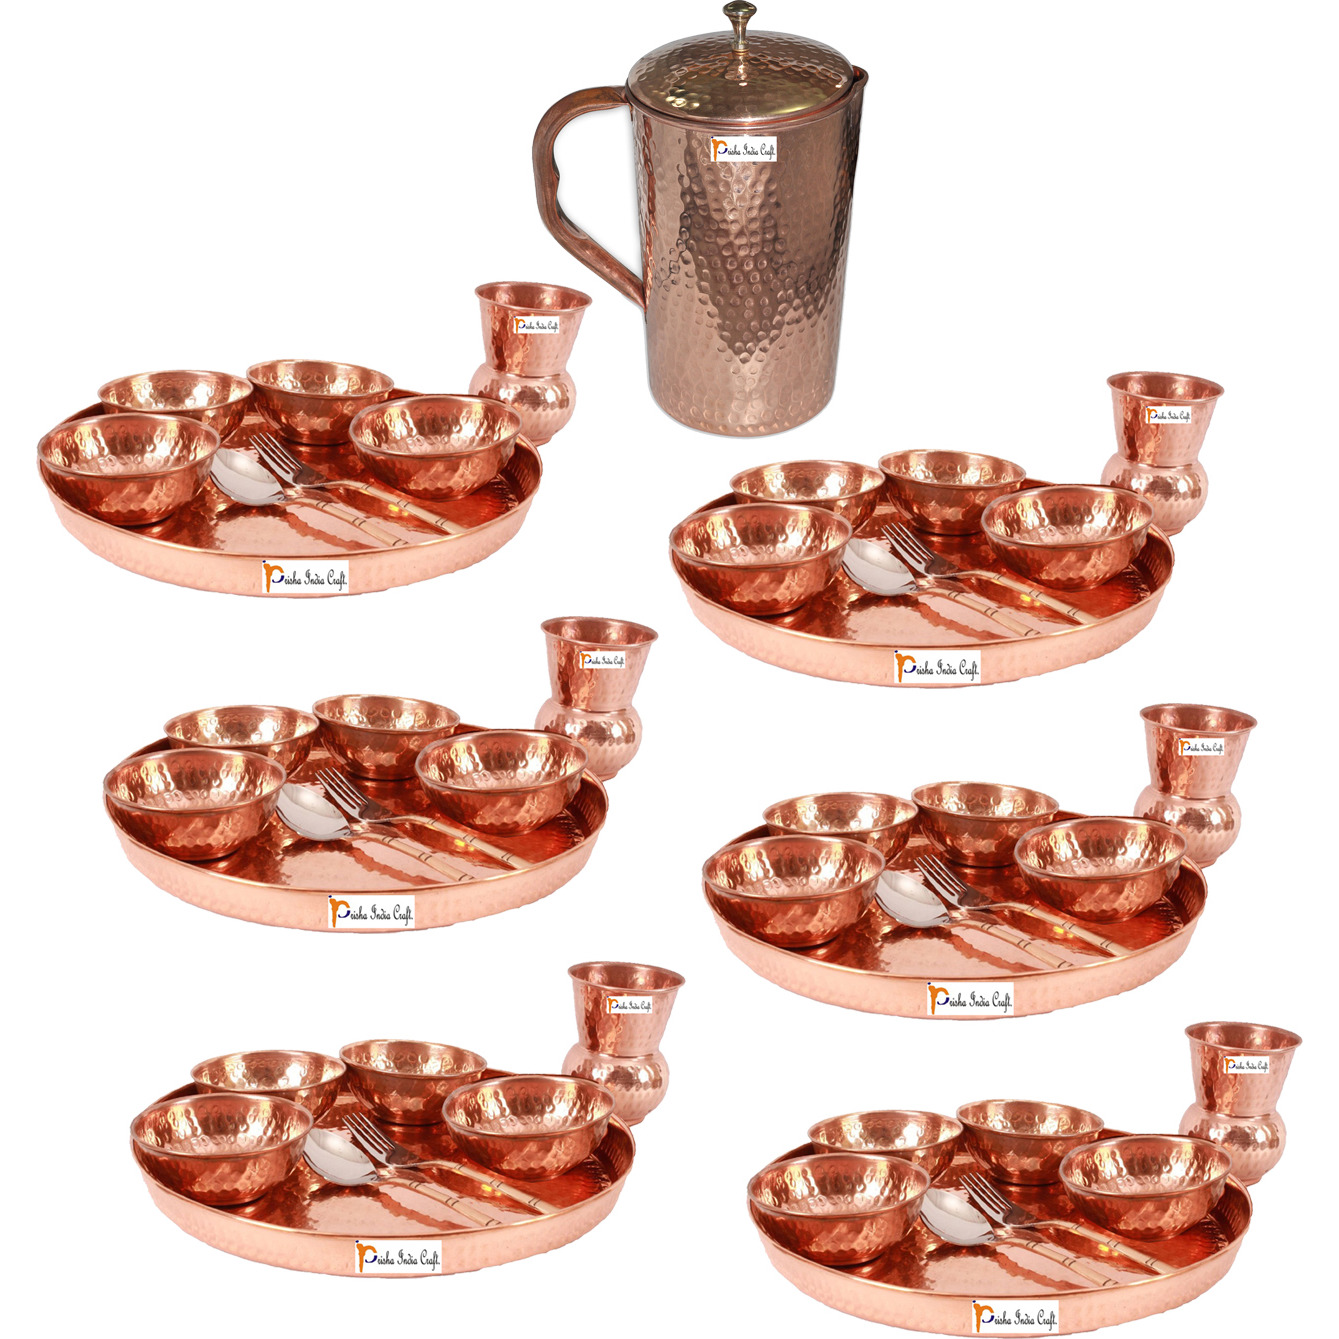 Prisha India Craft B. Set of 6 Dinnerware Traditional 100% Pure Copper Dinner Set of Thali Plate, Bowls, Glass and Spoon, Dia 12  With 1 Pure Copper Hammered Pitcher Jug - Christmas Gift